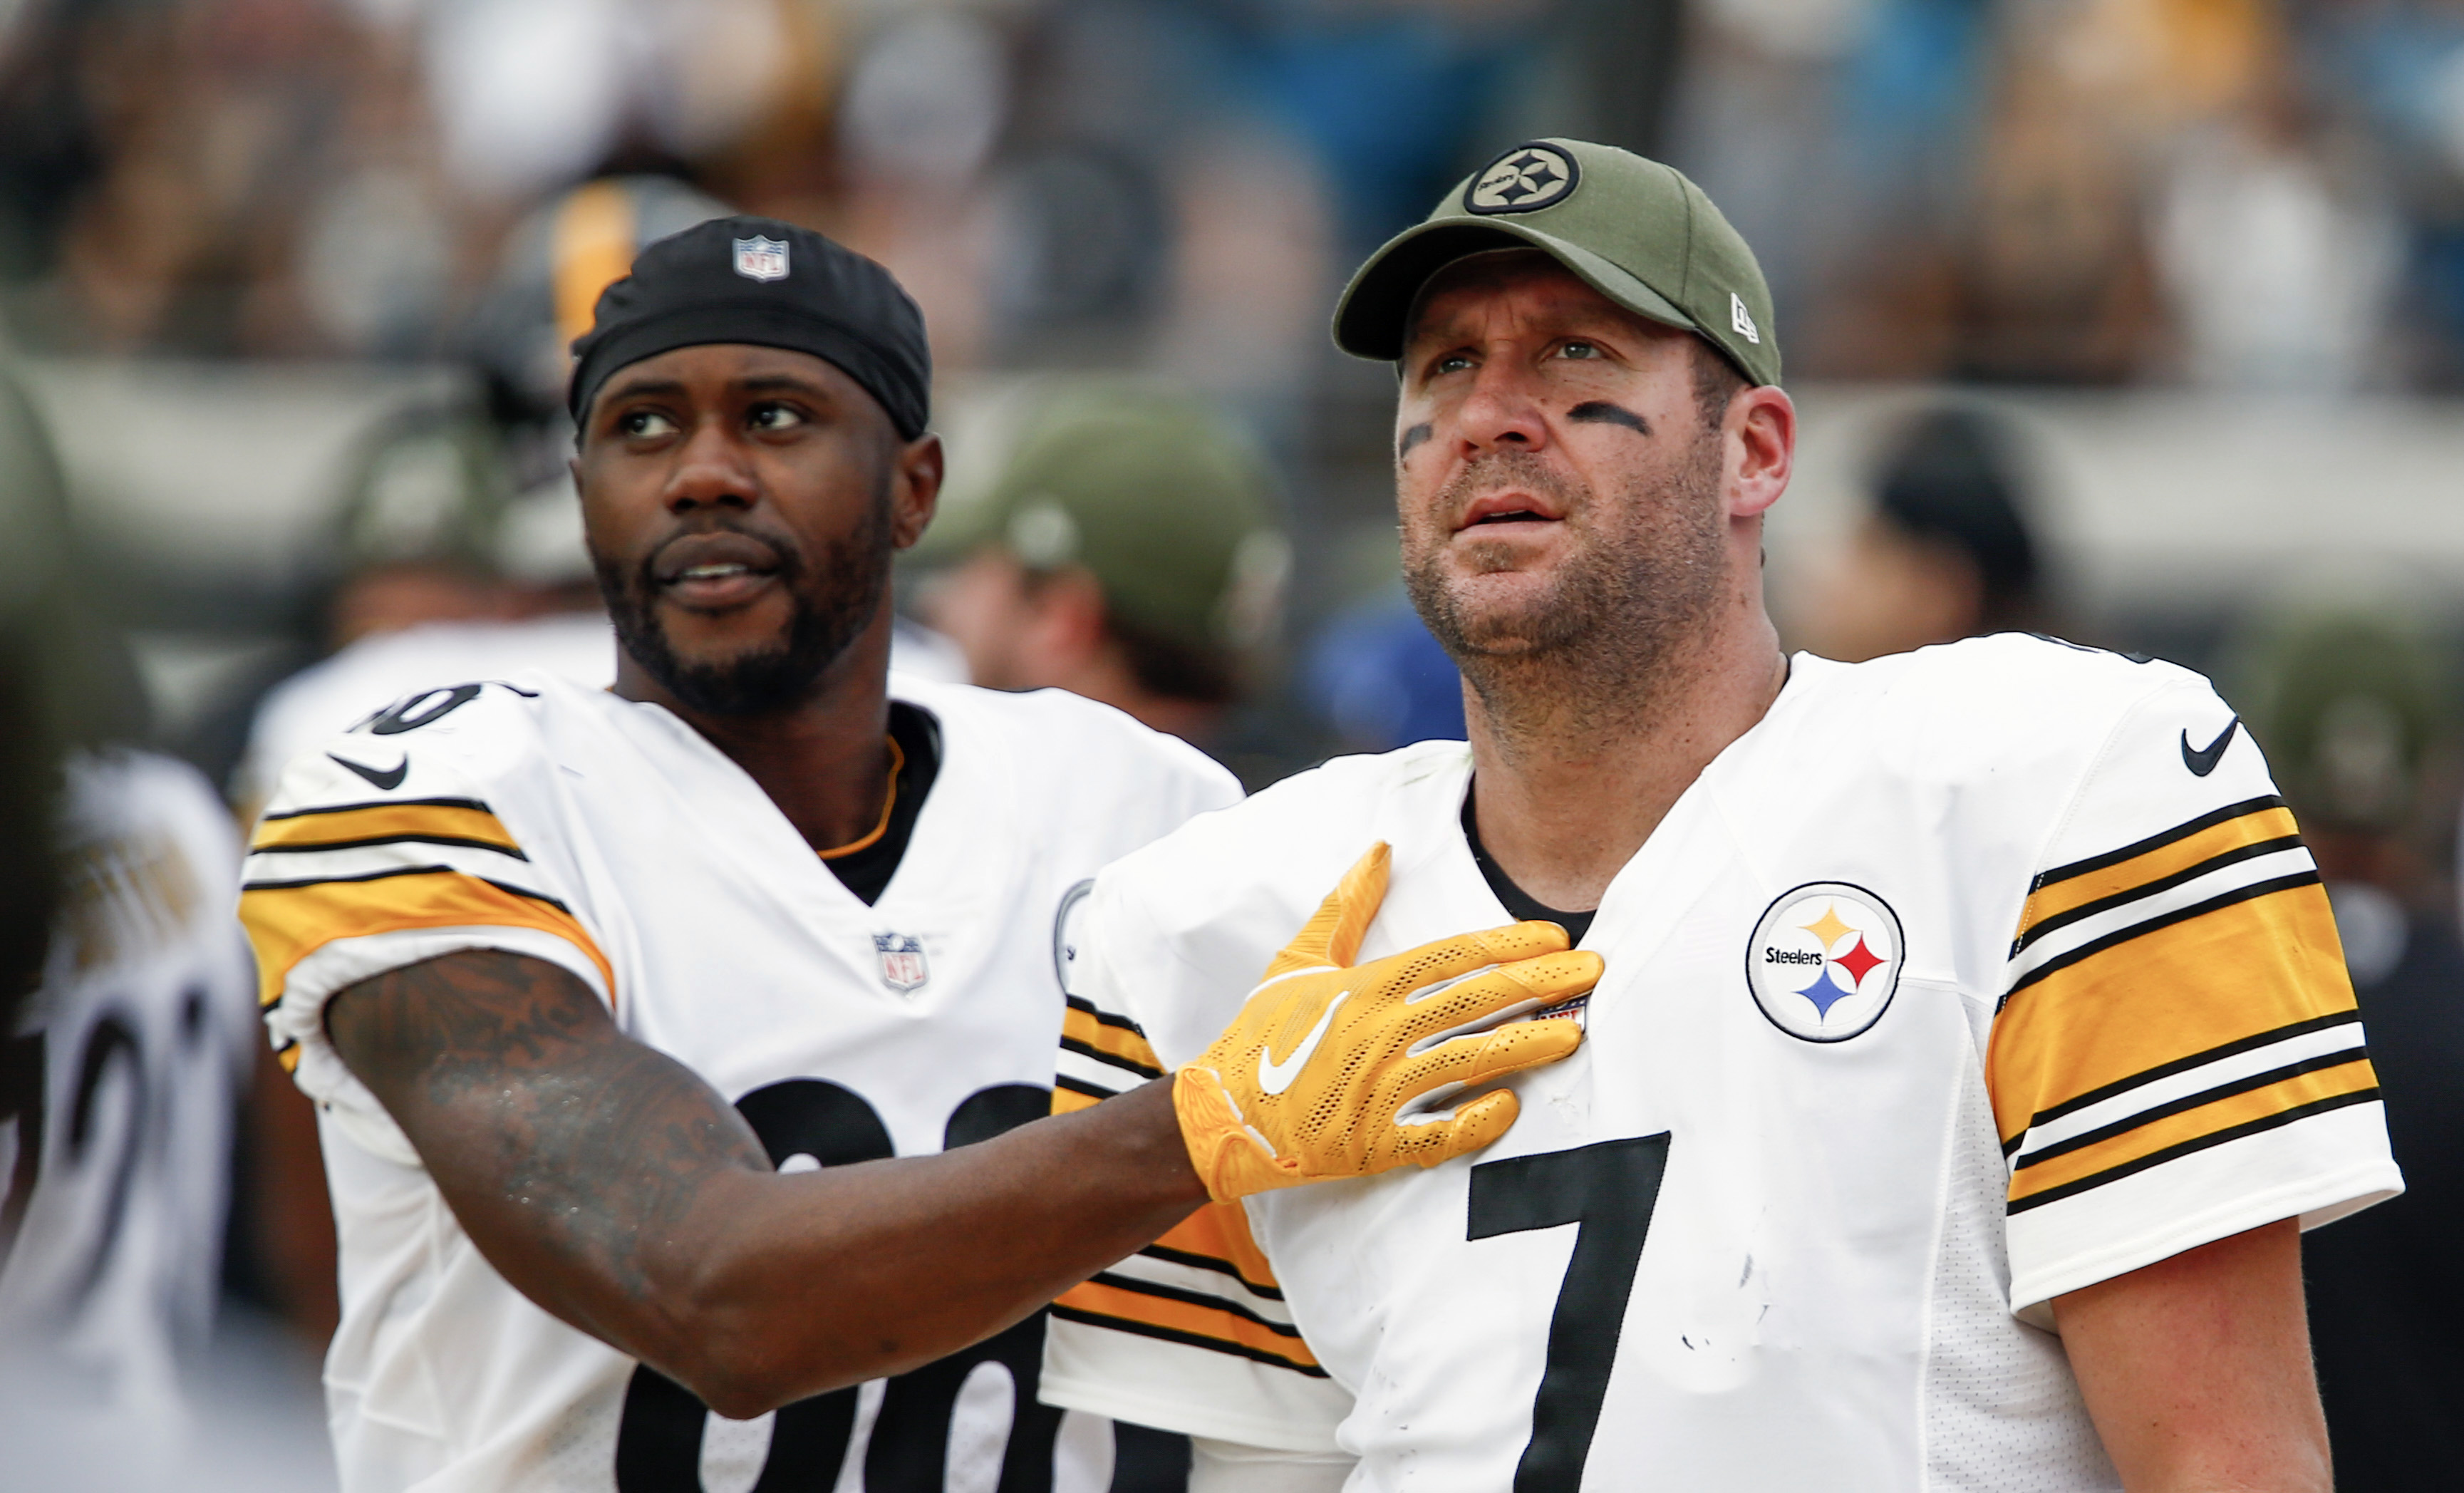 Ben Roethlisberger: Jags talk a lot, but I'm carrying the ball home